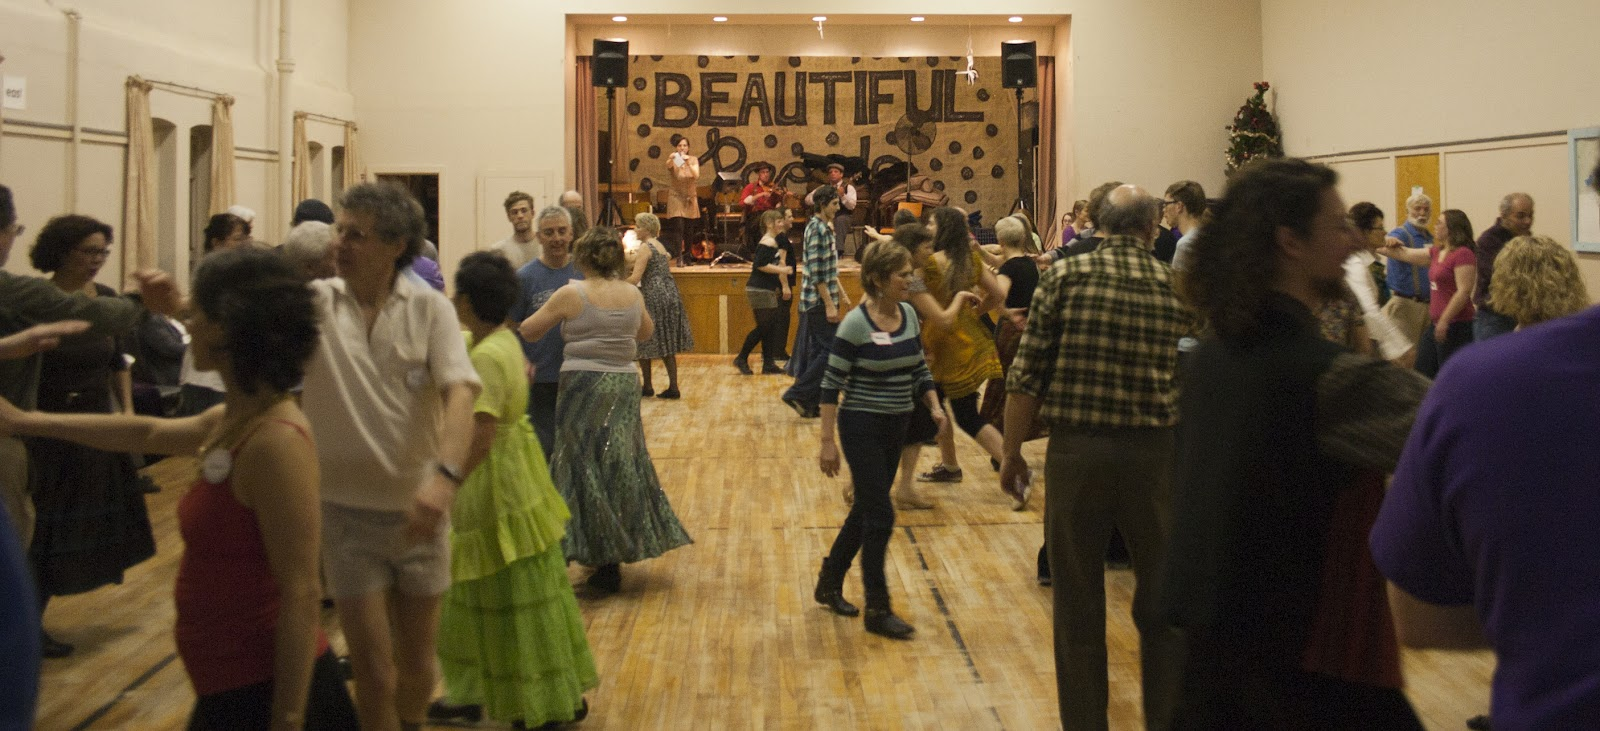 Contra dancing takes place 2-3 times a month in a church hall near the Toronto subway line.